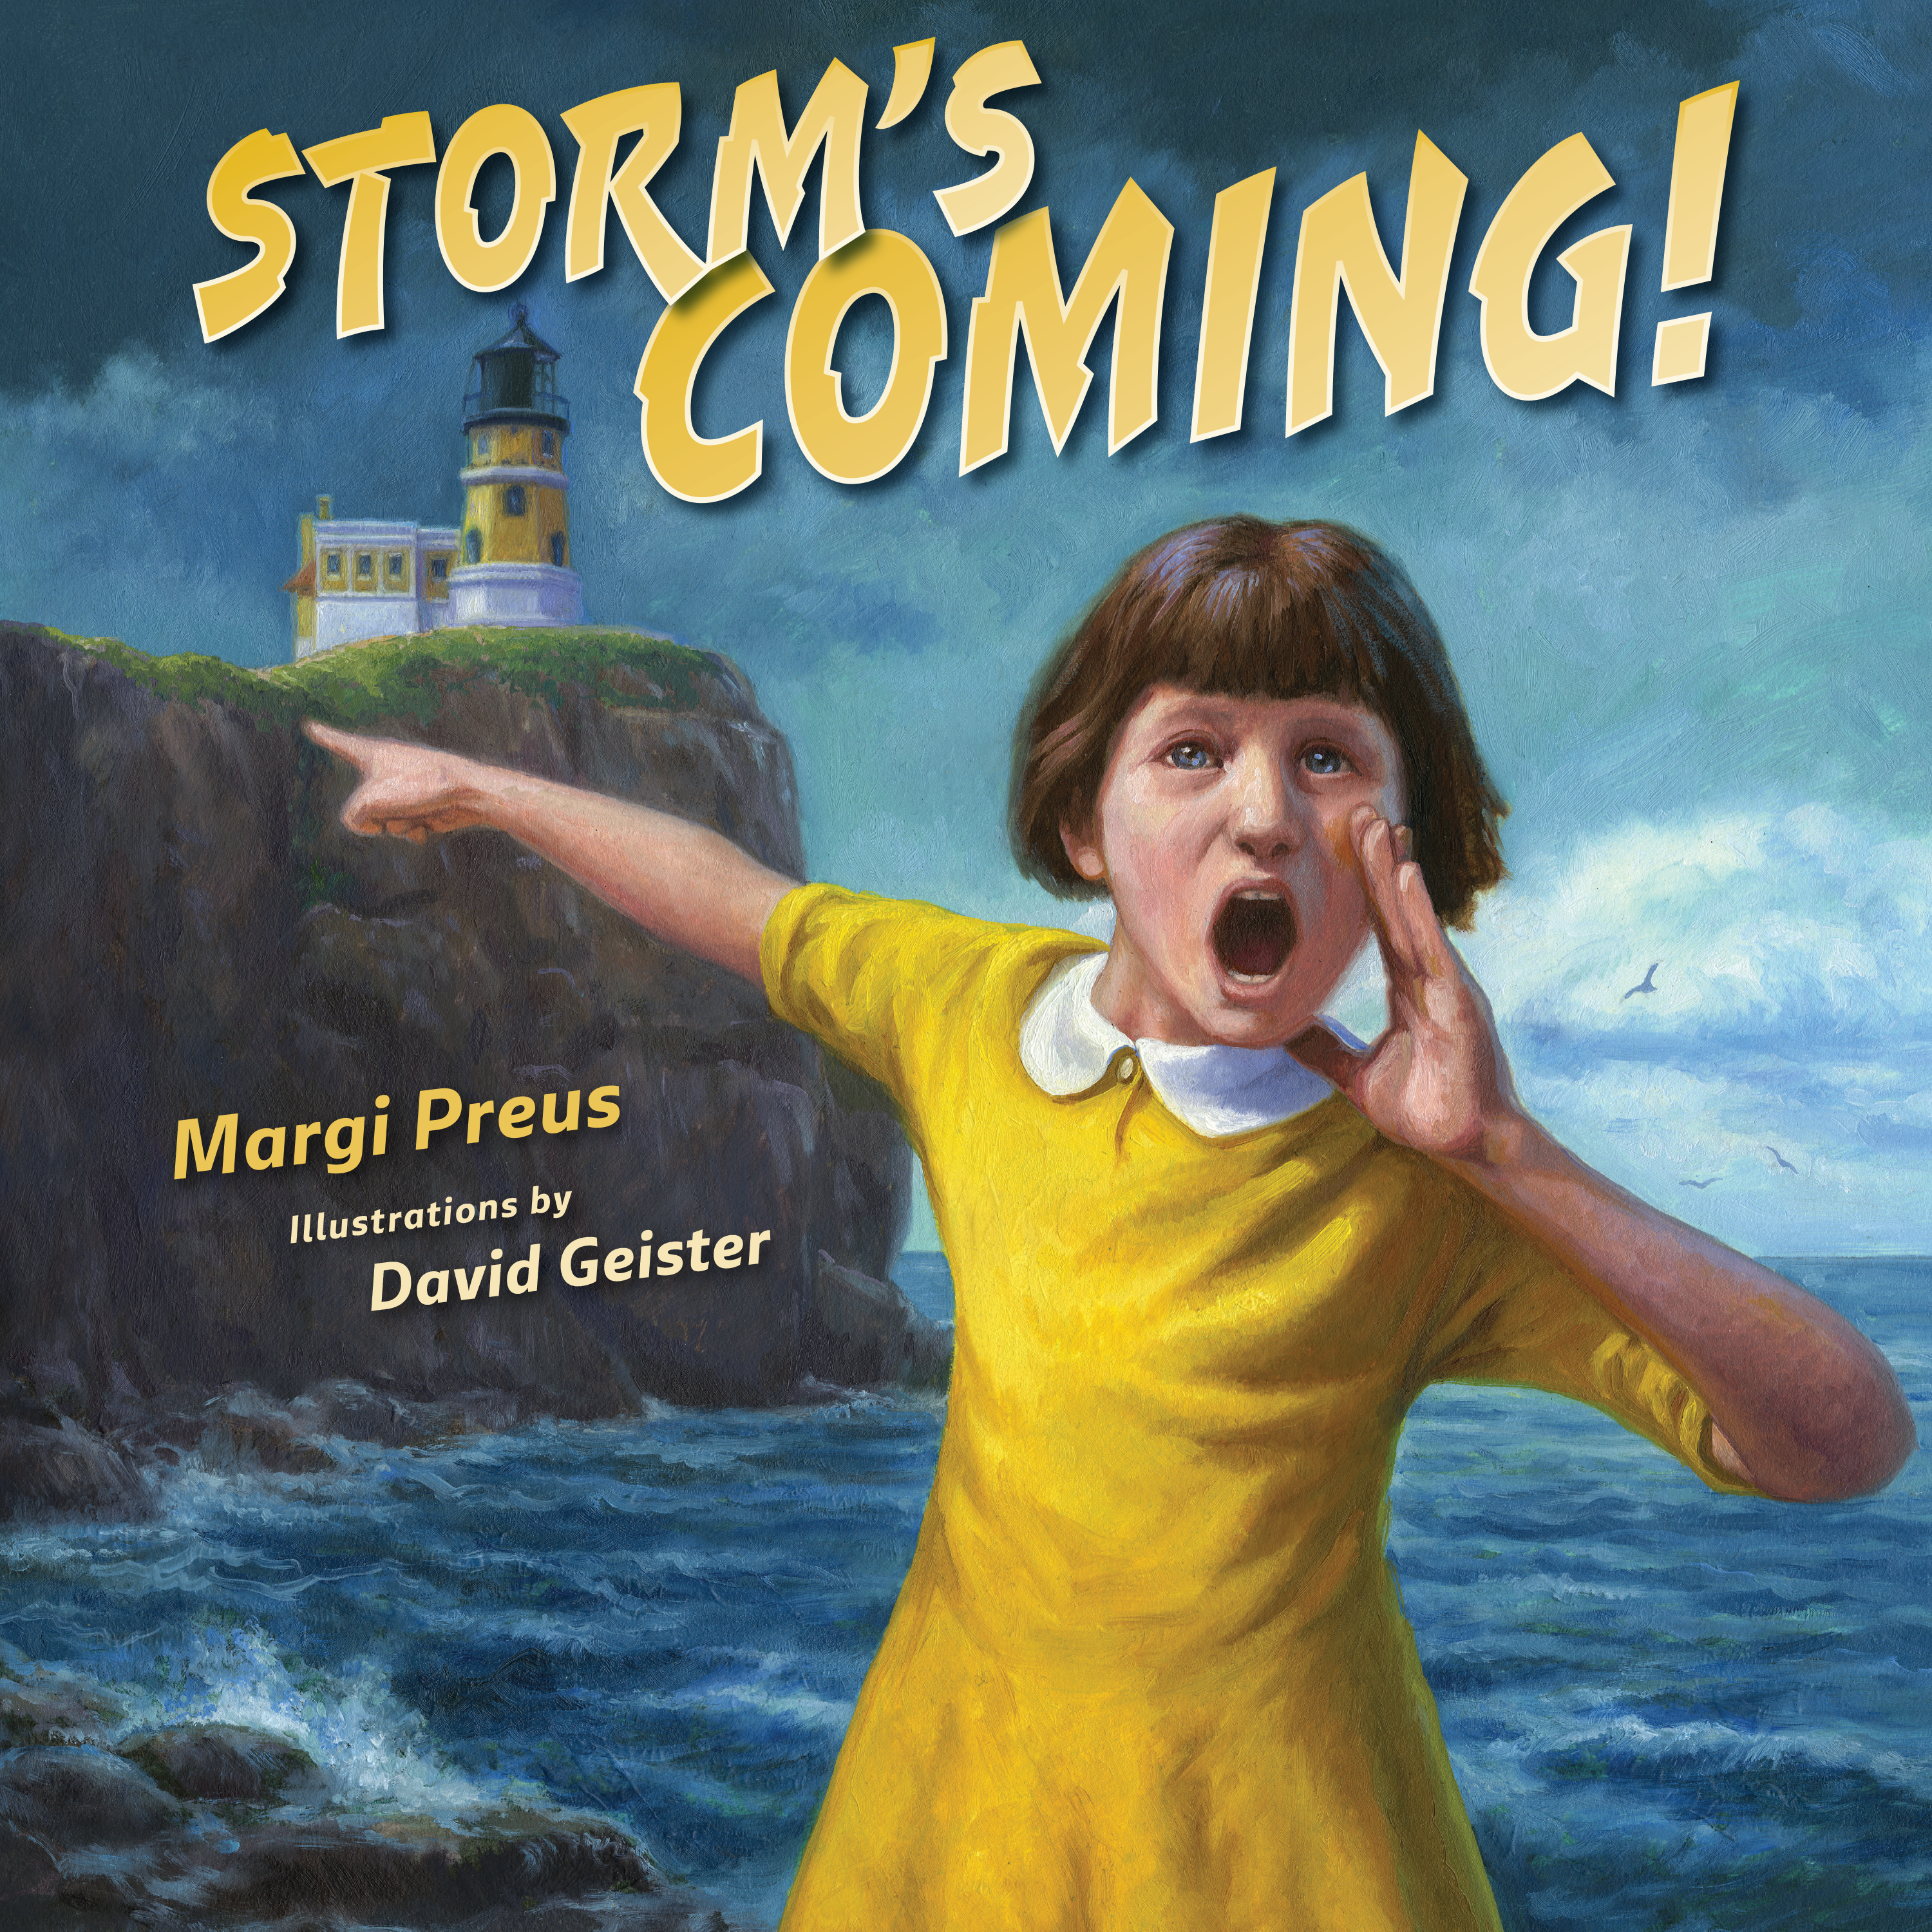 Storm's Coming! by Margi Preus with Illustrations by David Geister